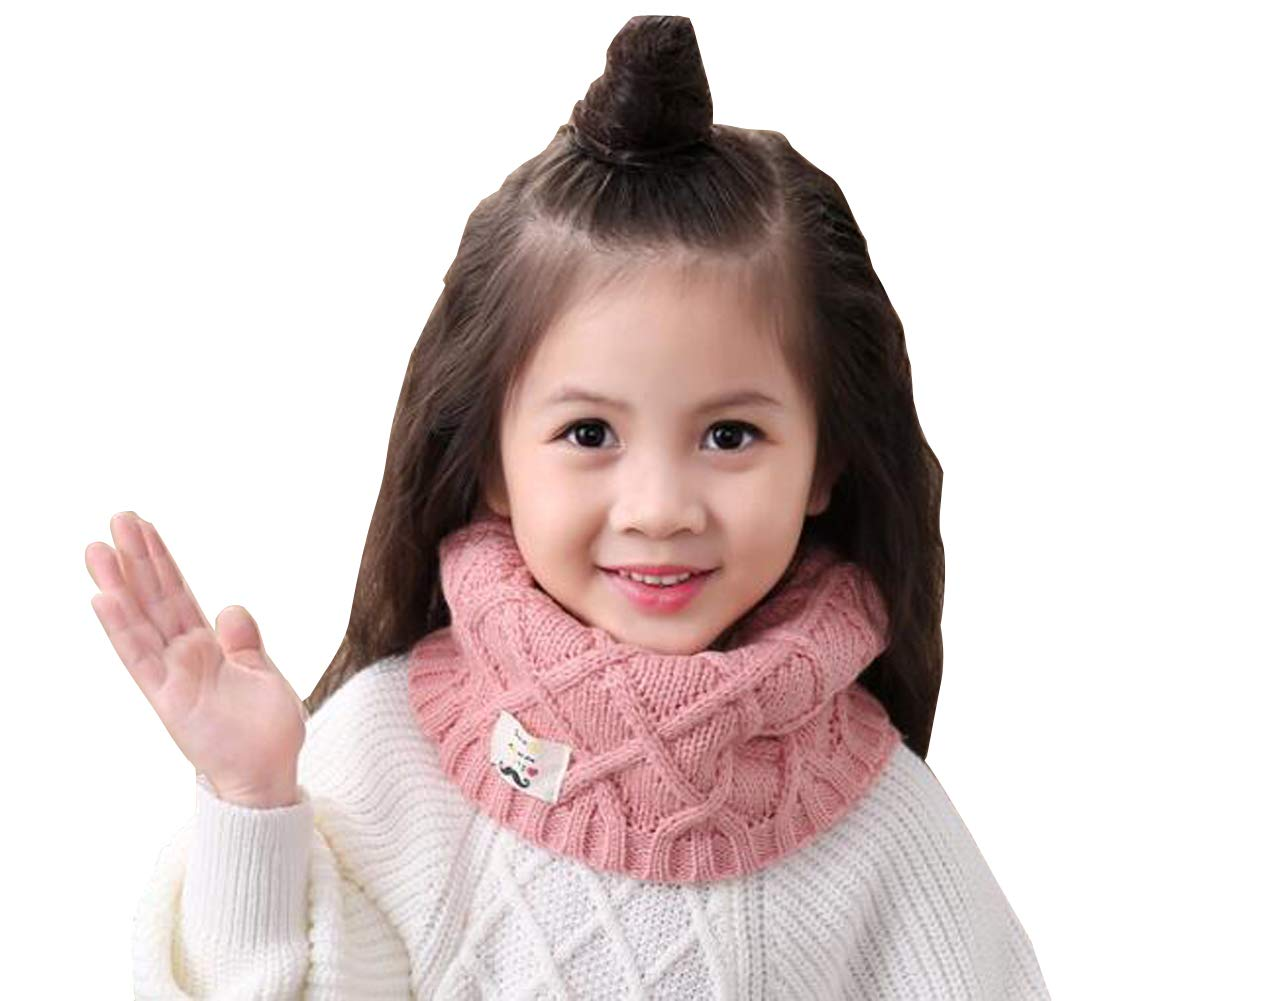 1PCS Kids Toddler Skin-friendly Soft Thick Knitted Neck Warm Scarf Simple and Fachion Neck Wrap Scarves Suitable For 2-10 Years Old Girls(Pink) Elandy